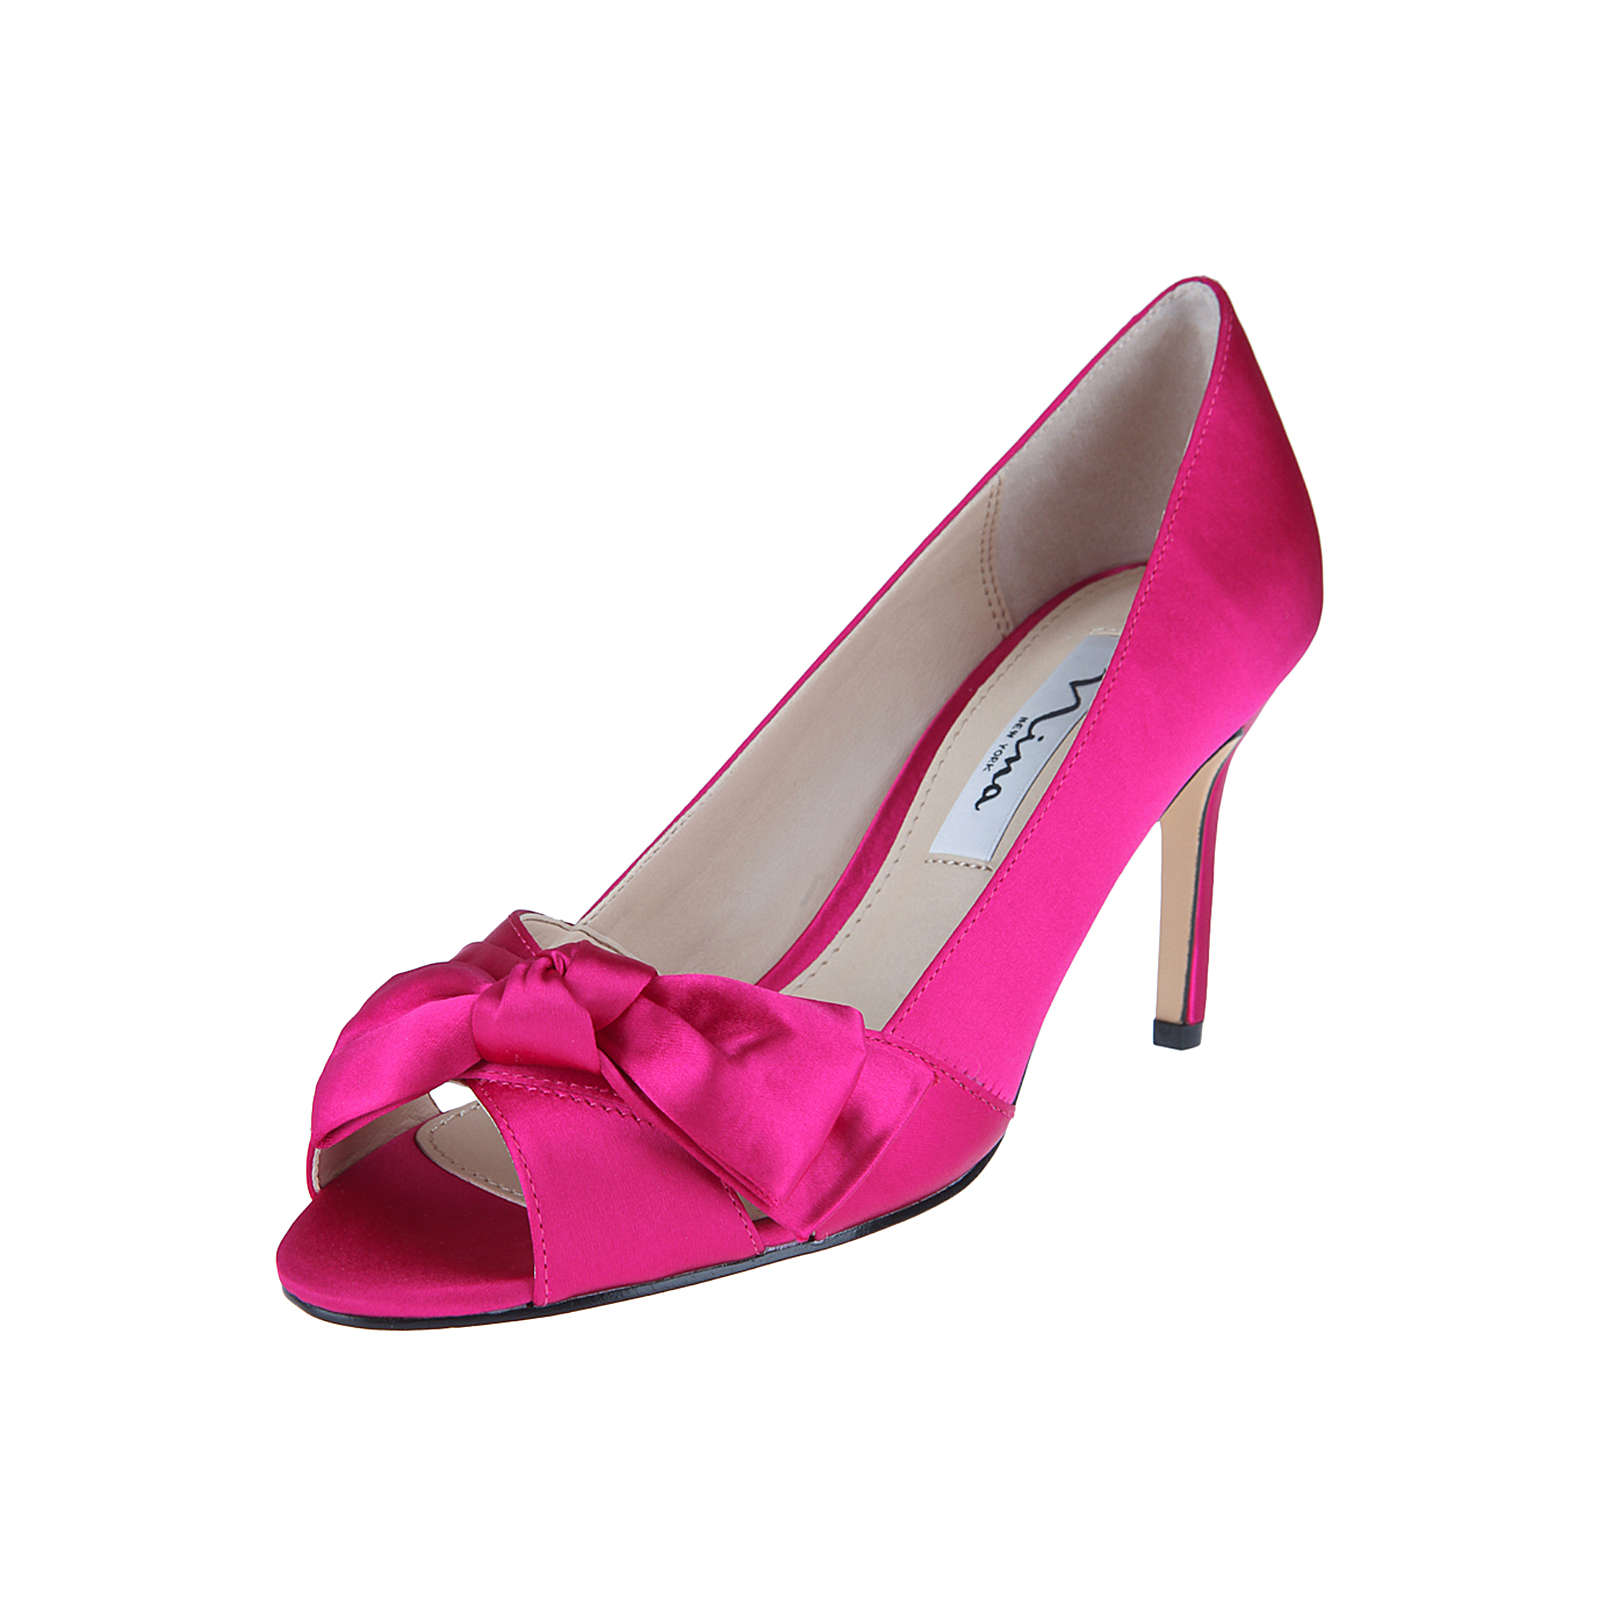 Nina Shoes Peeptoe-Pumps FORBET Peeptoe-Pumps pink Damen Gr. 40